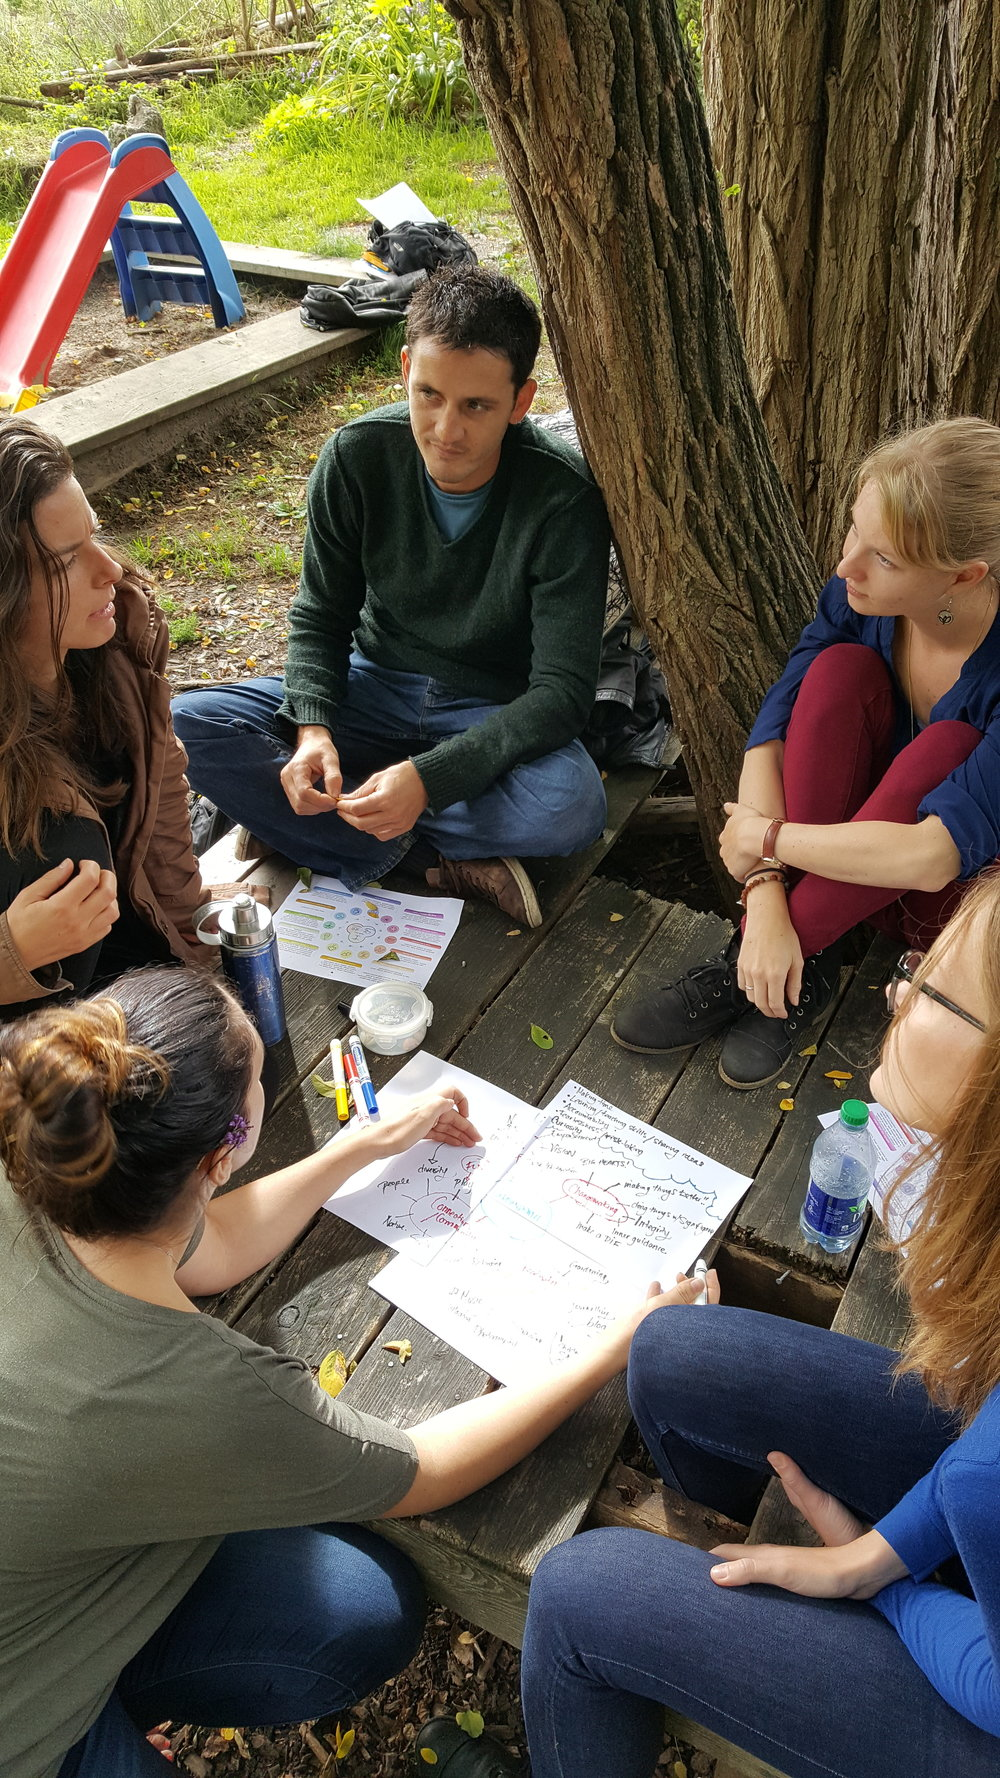 permaculture-class-with-kim-dvg-gs5_30537379561_o.jpg